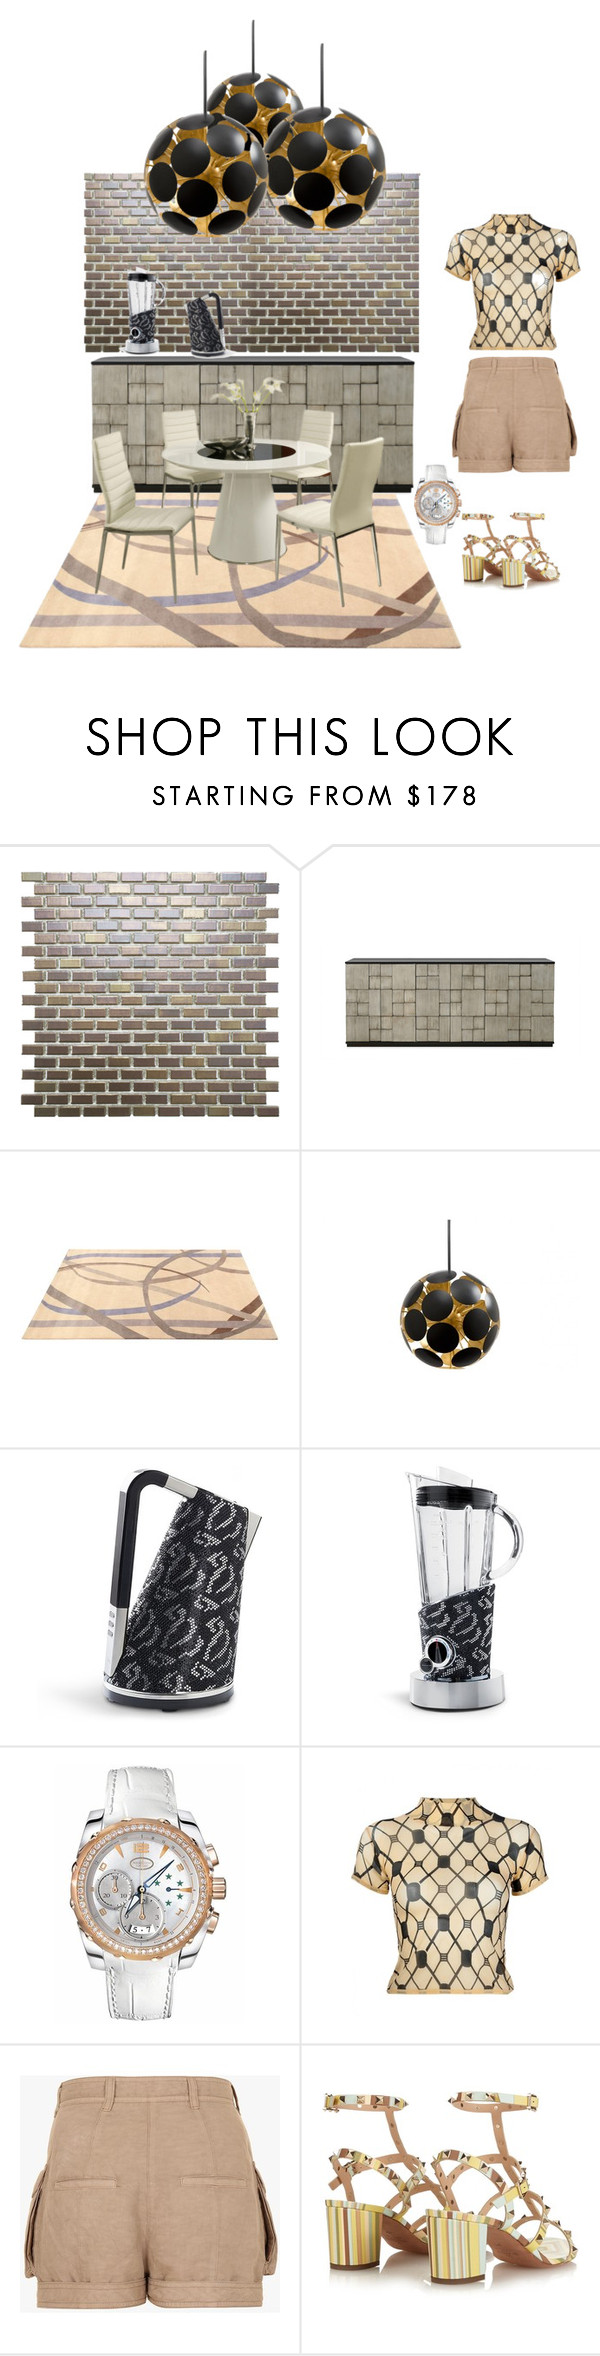 """""""Untitled #793"""" by aifosbr ❤ liked on Polyvore featuring interior, interiors, interior design, home, home decor, interior decorating, SomerTile, Redford House, ABC Italia and Jayson Home"""